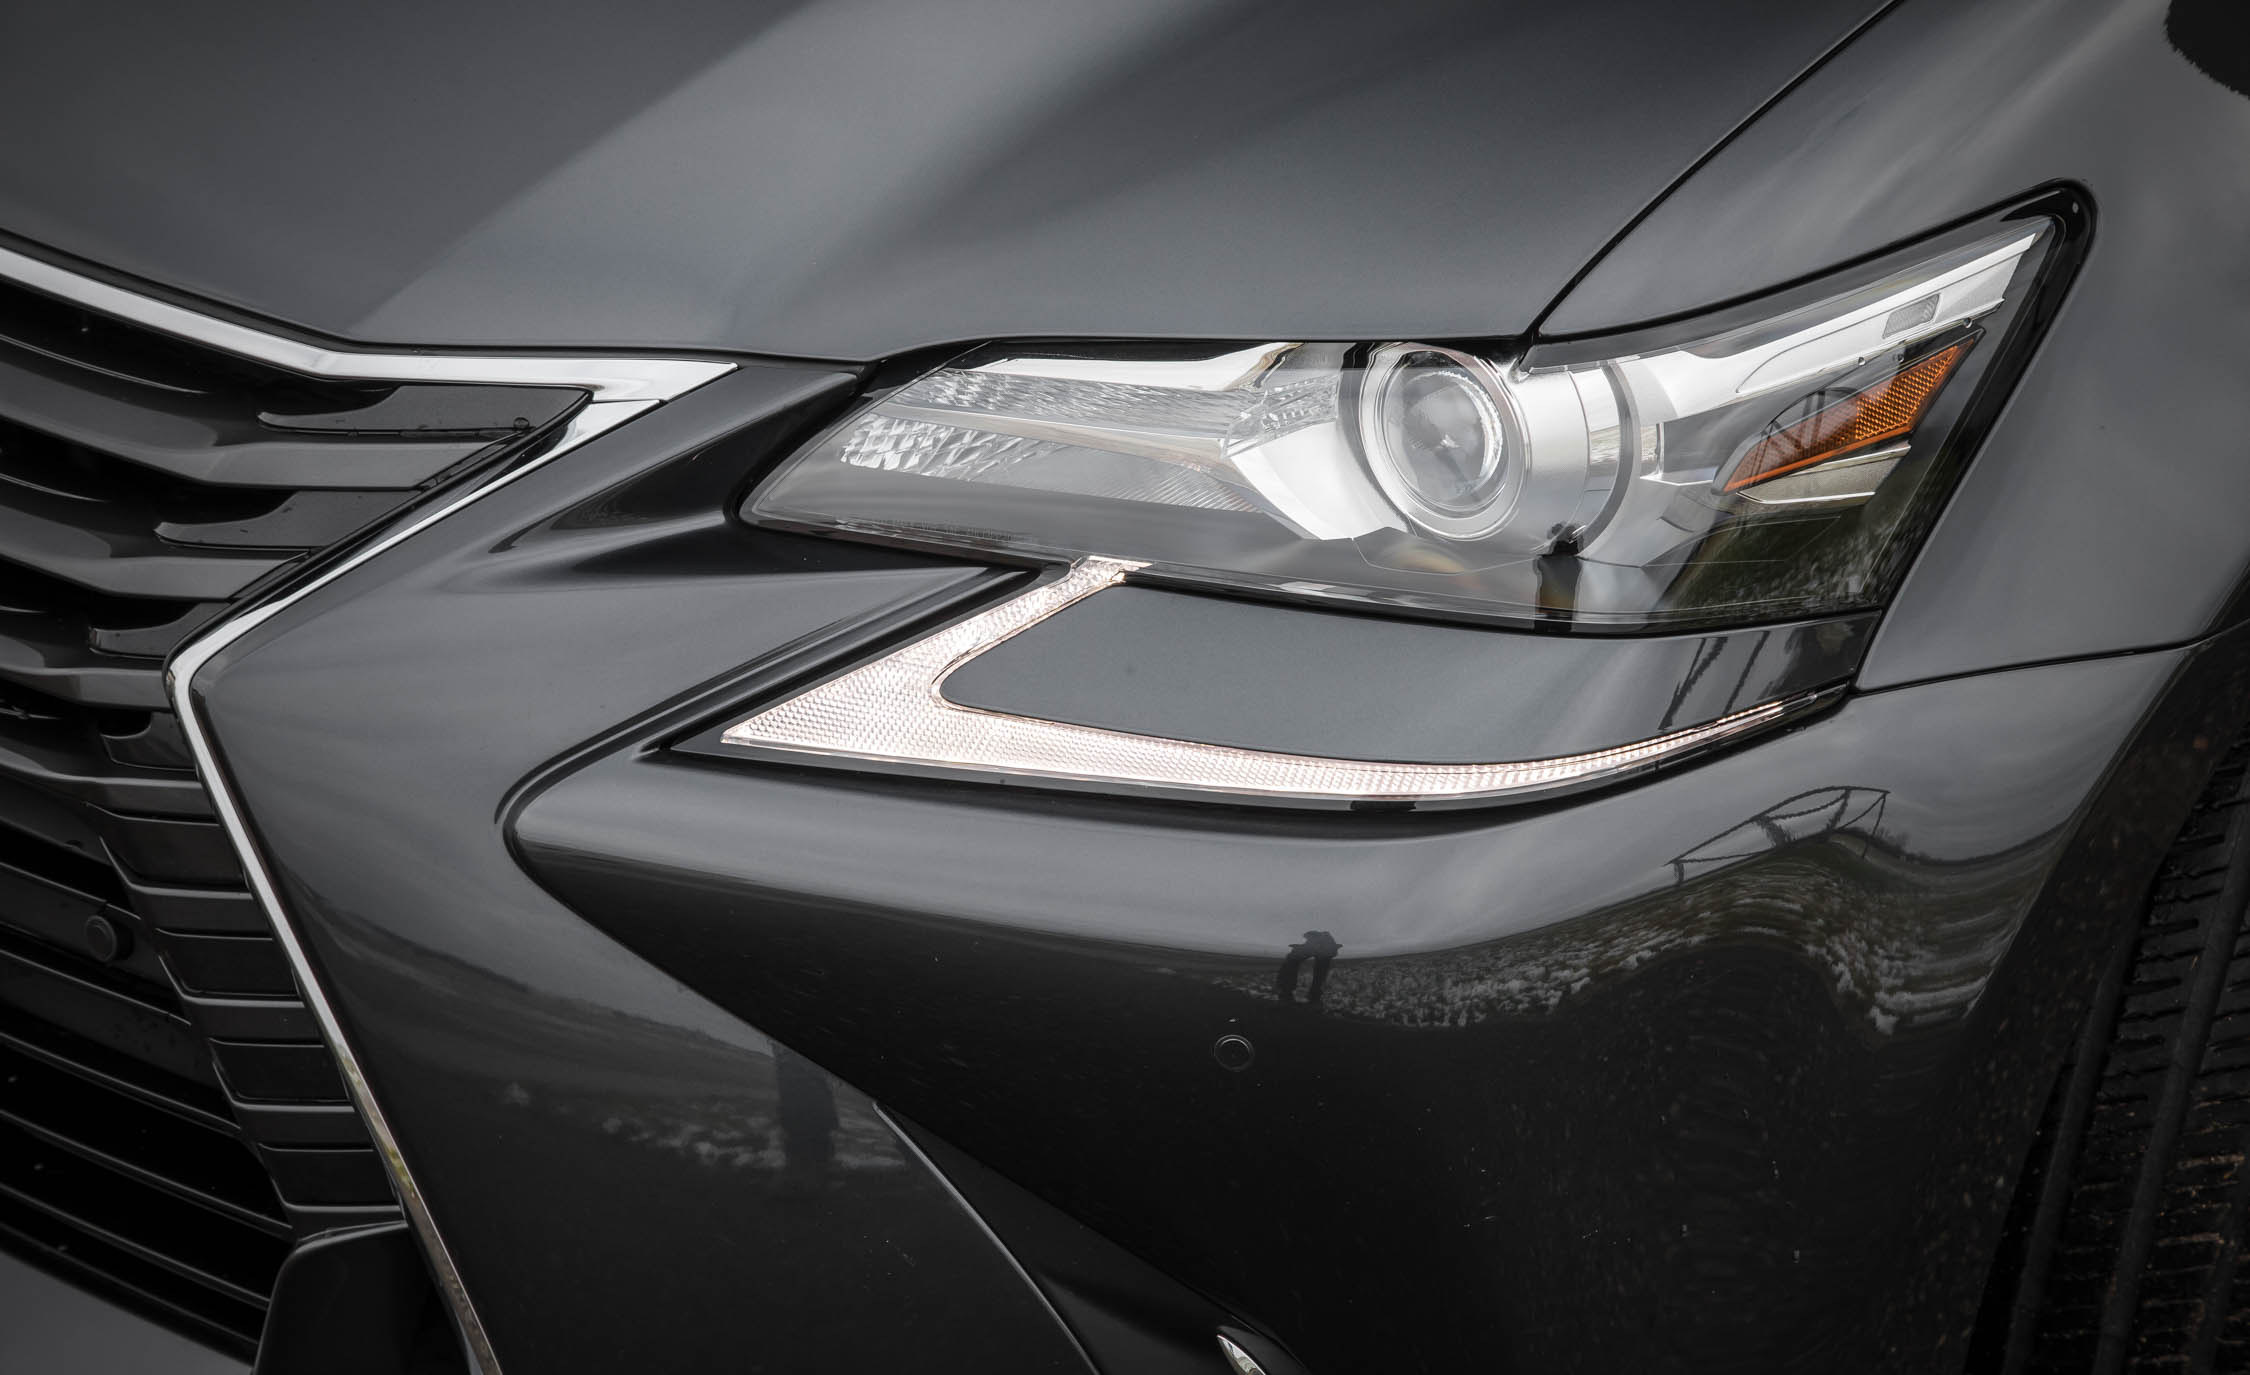 2017 Lexus GS200t Exterior View Headlight Corner (Photo 10 of 26)